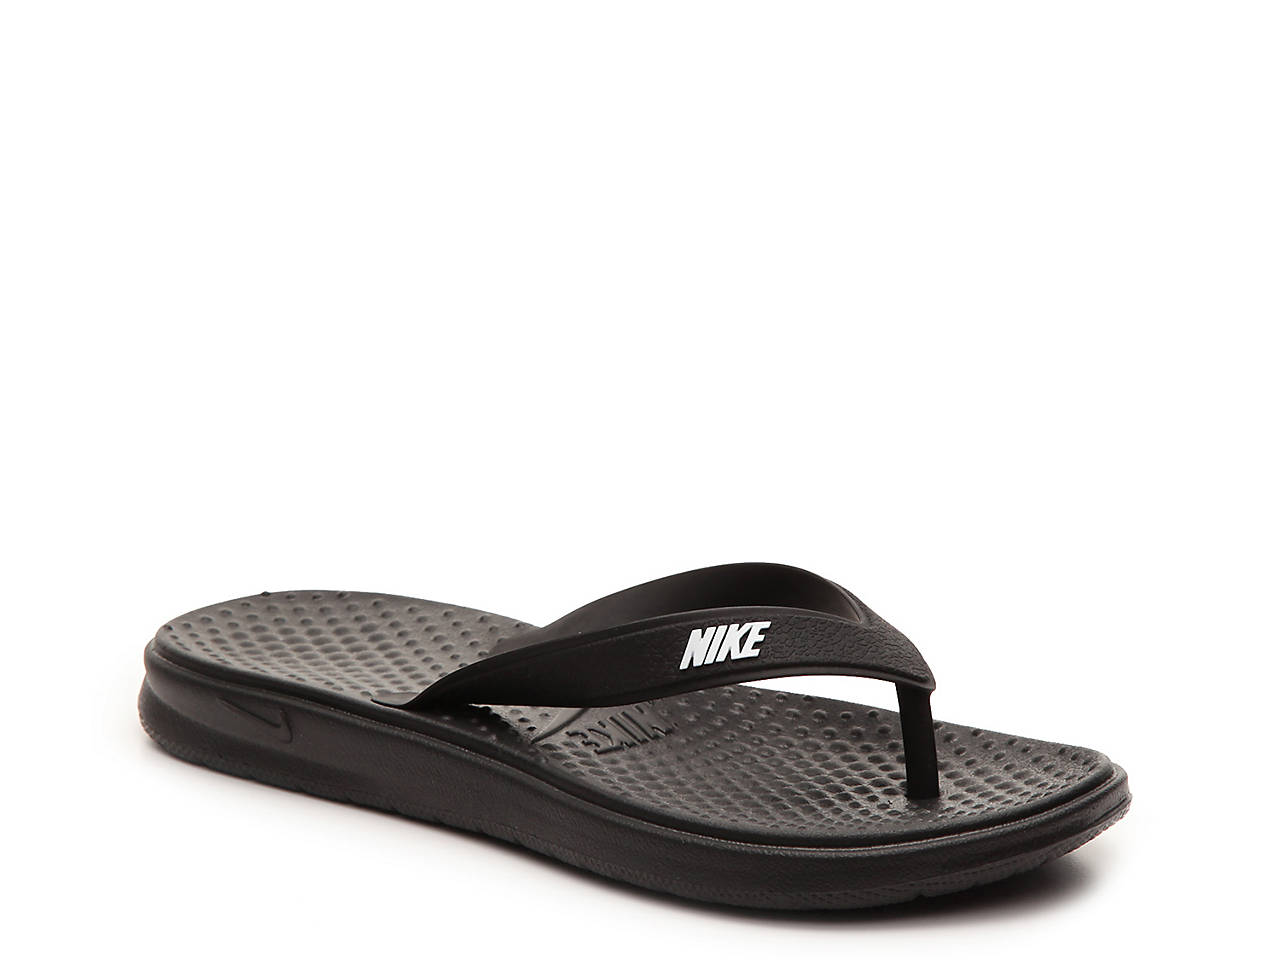 61c562af53eb Nike Solay Flip Flop Women s Shoes